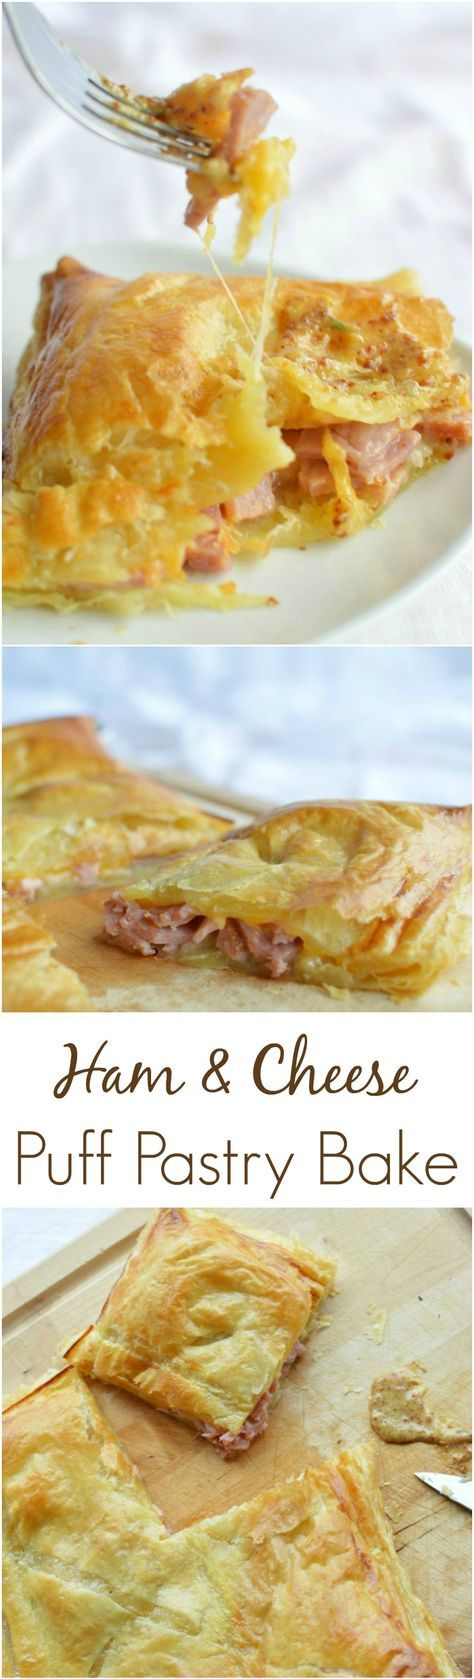 This Ham and Cheese Puff Pastry Bake is the perfect way to use your leftover ham. Ham, cheese, pastry and a delicious mustard dipping sauce!